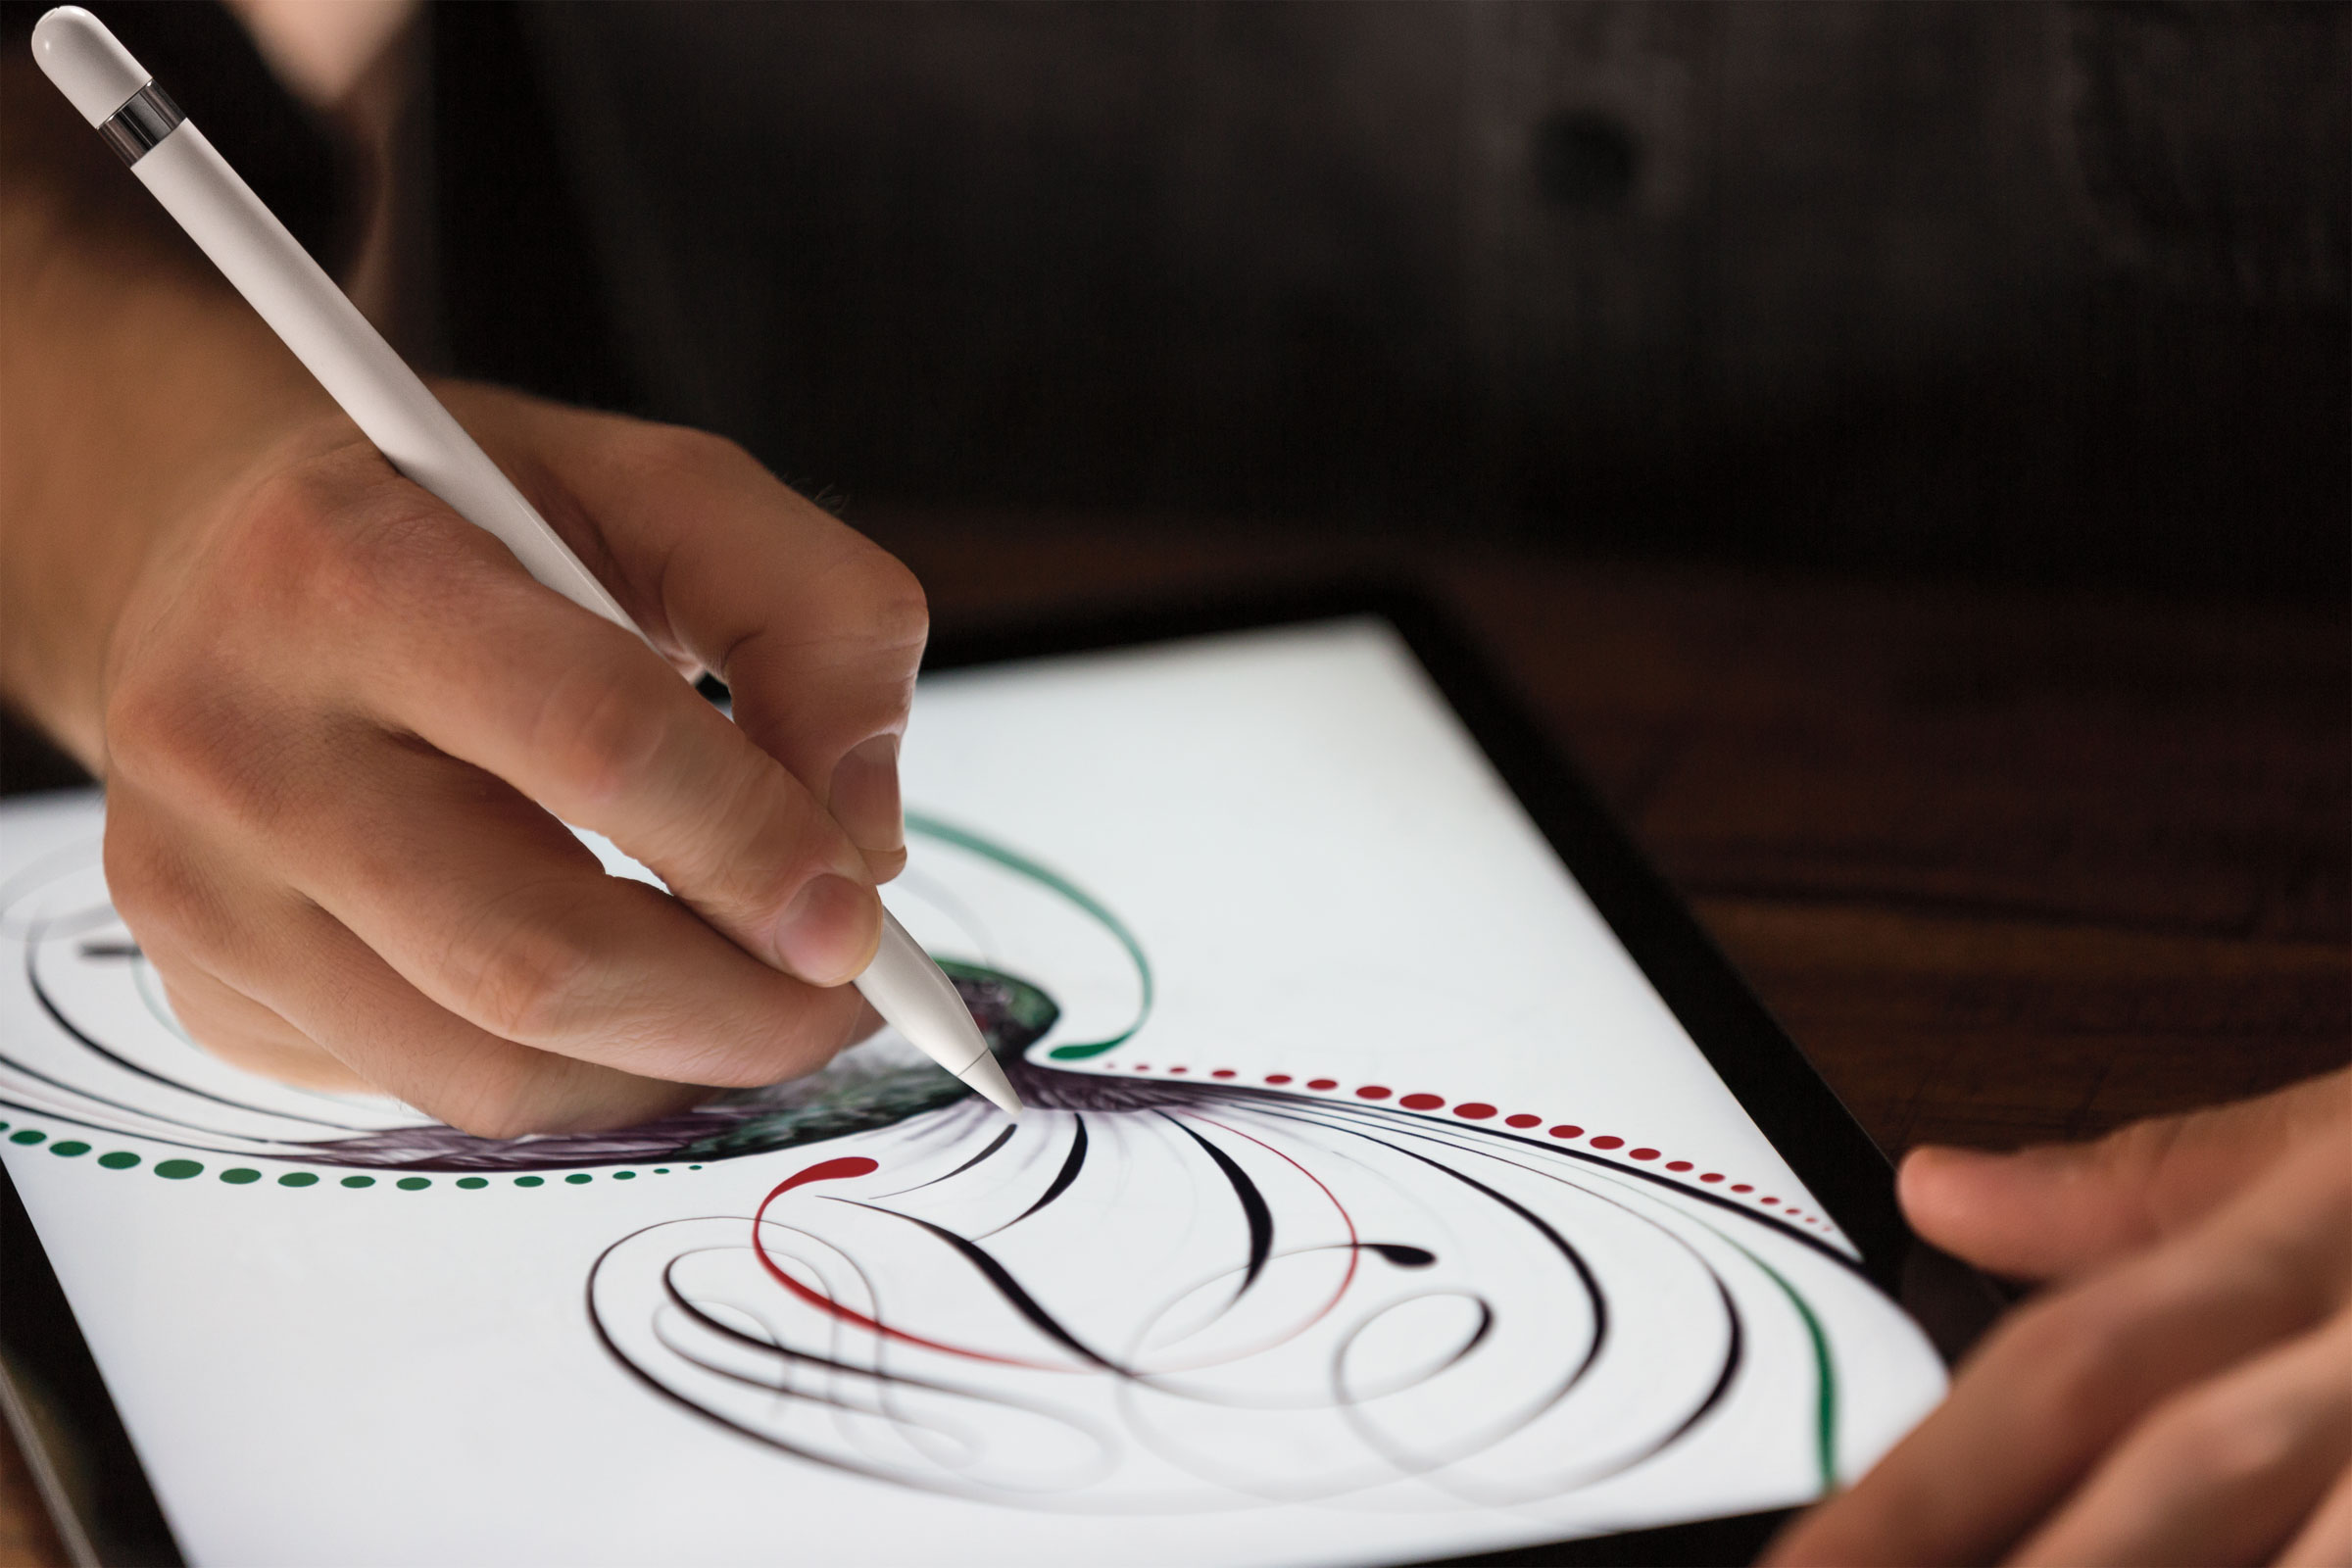 iPadPro_Pencil_Lifestyle2-PRINT_